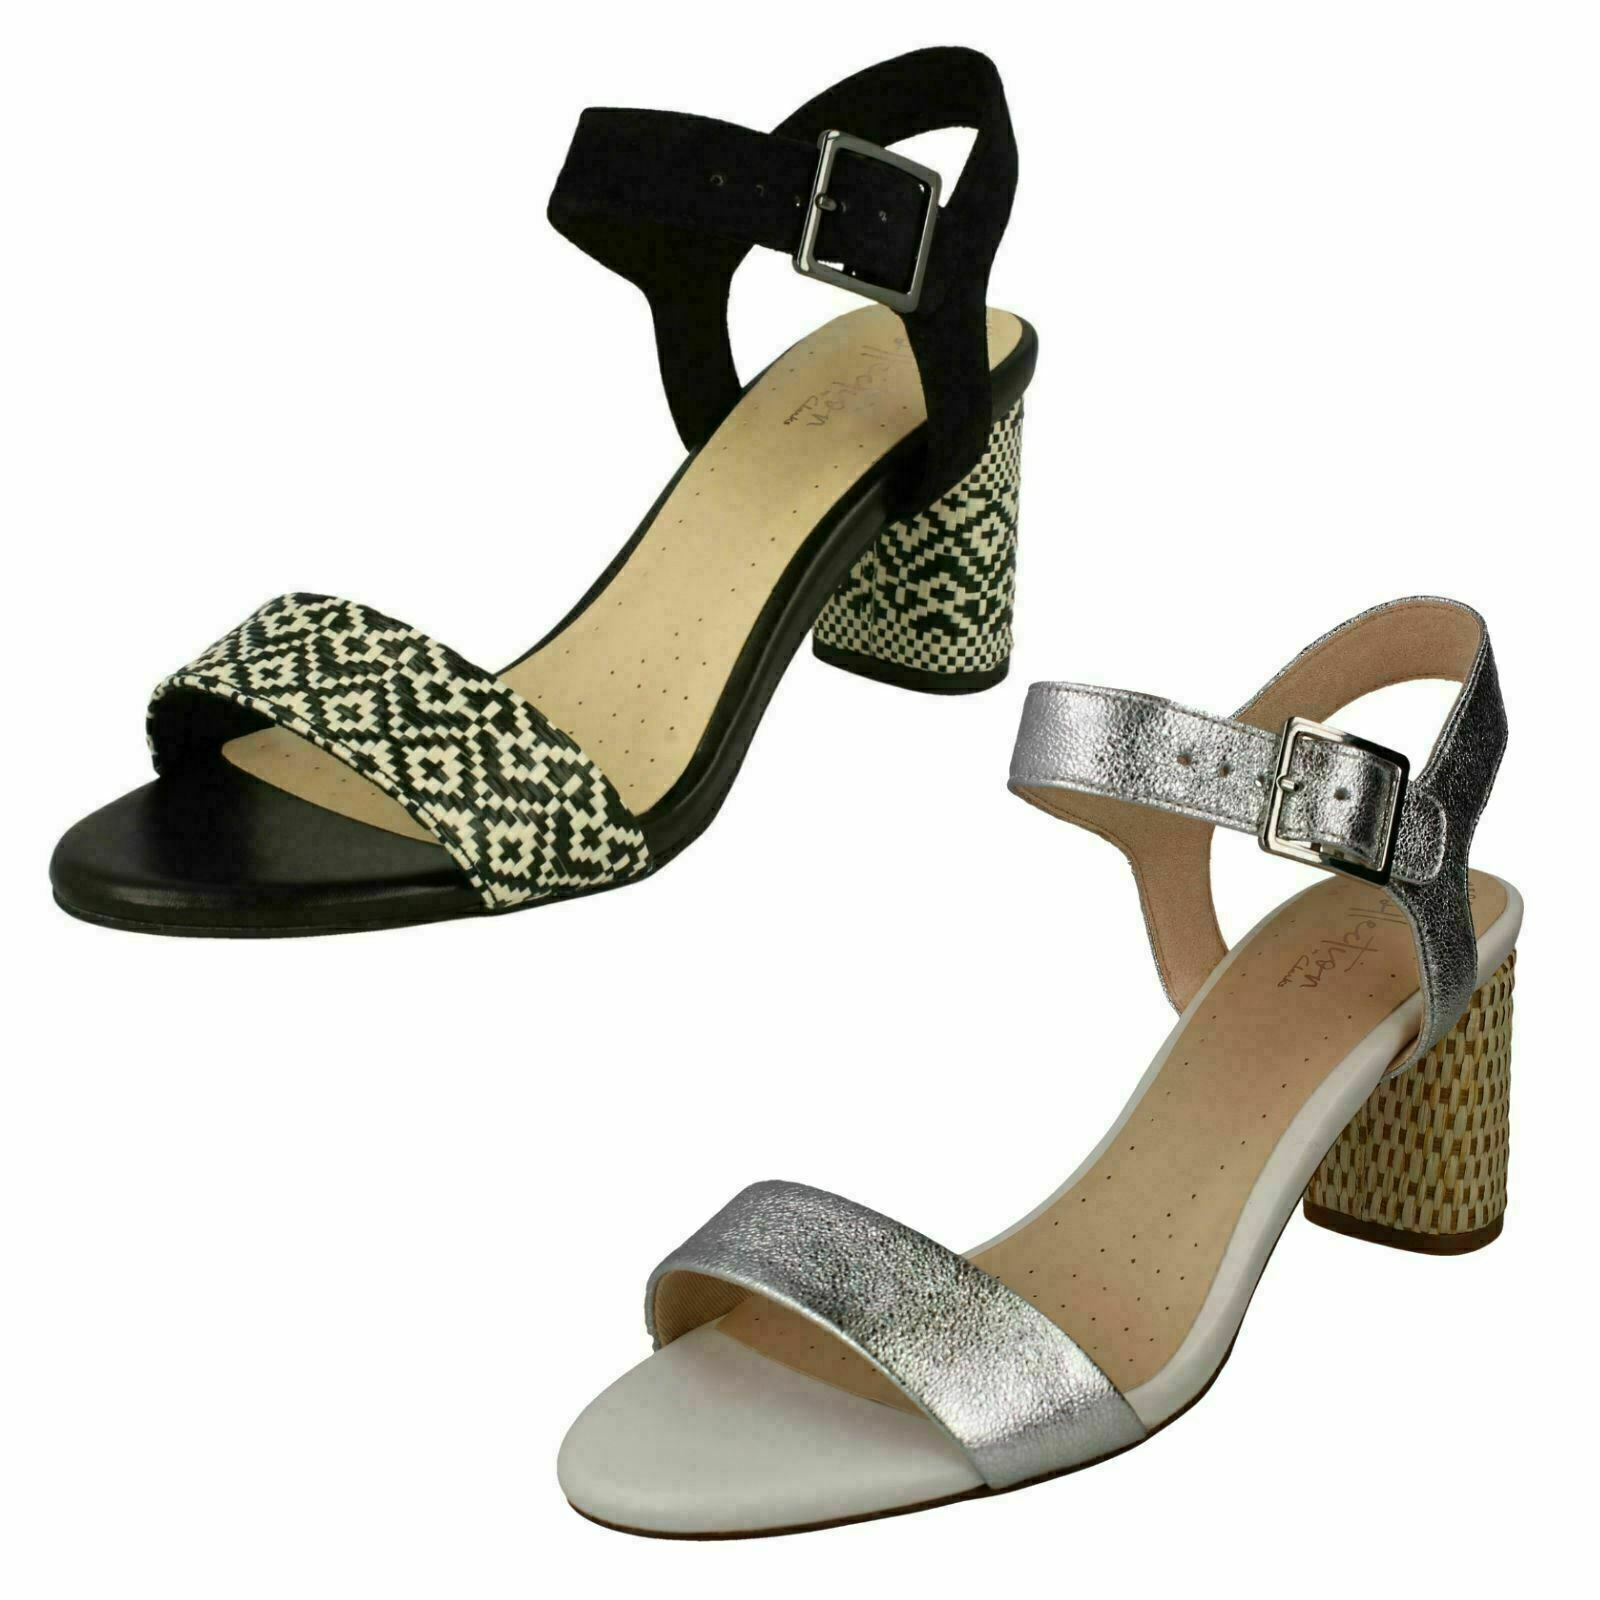 Clarks mujer heel sandals 'Amali weave'